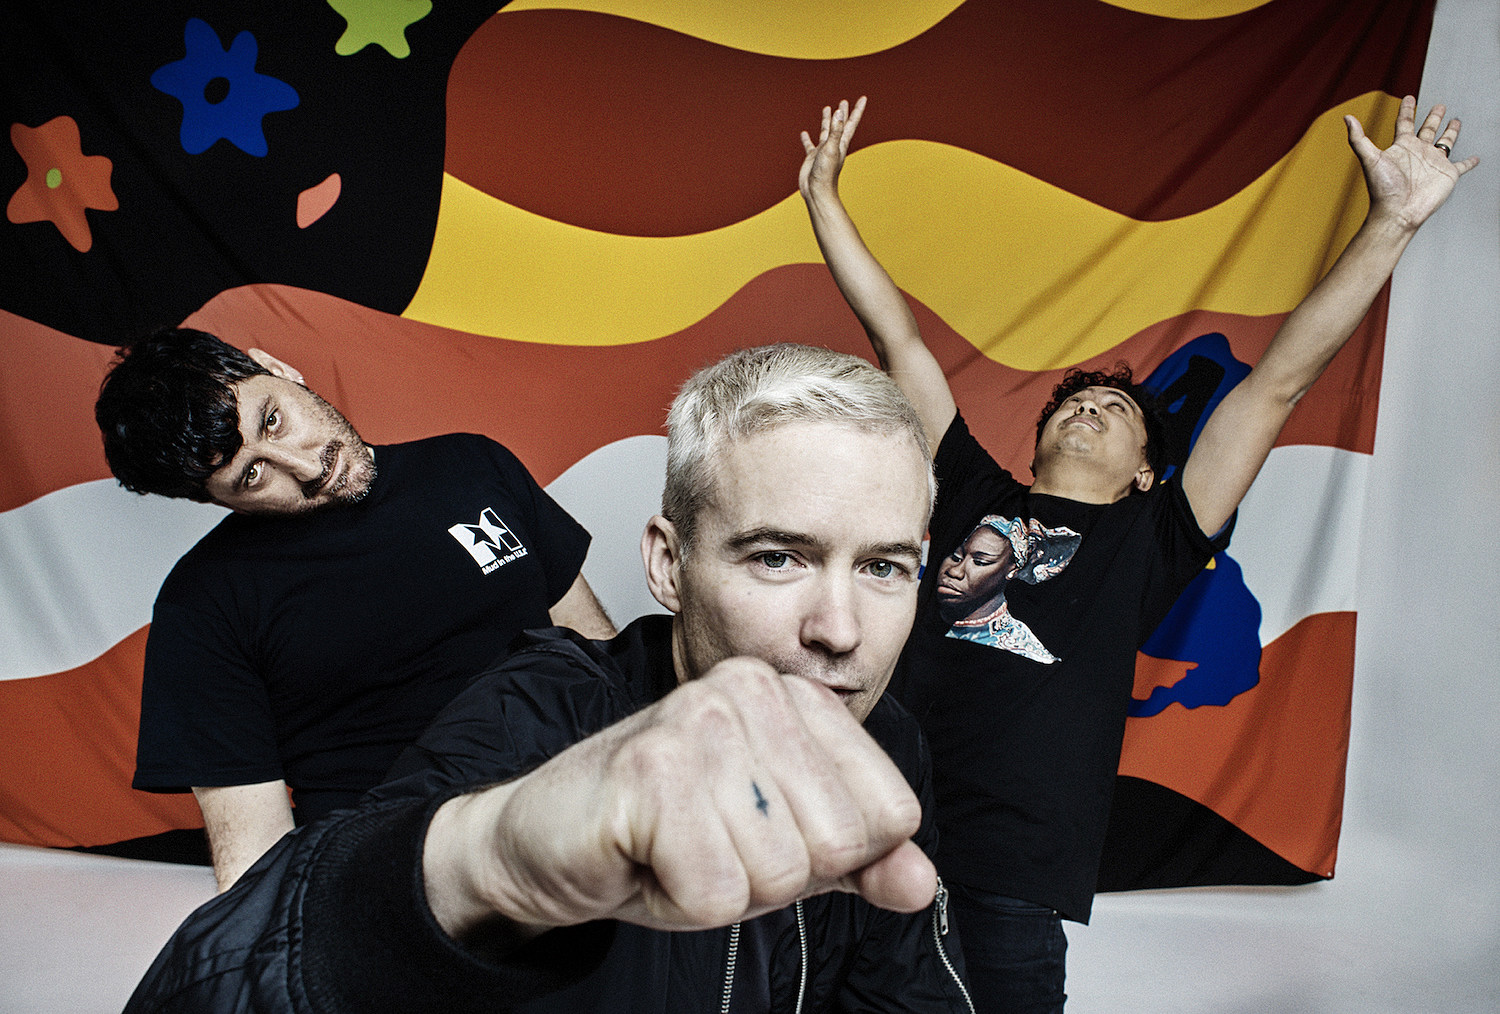 The Avalanches, who play Governors Ball